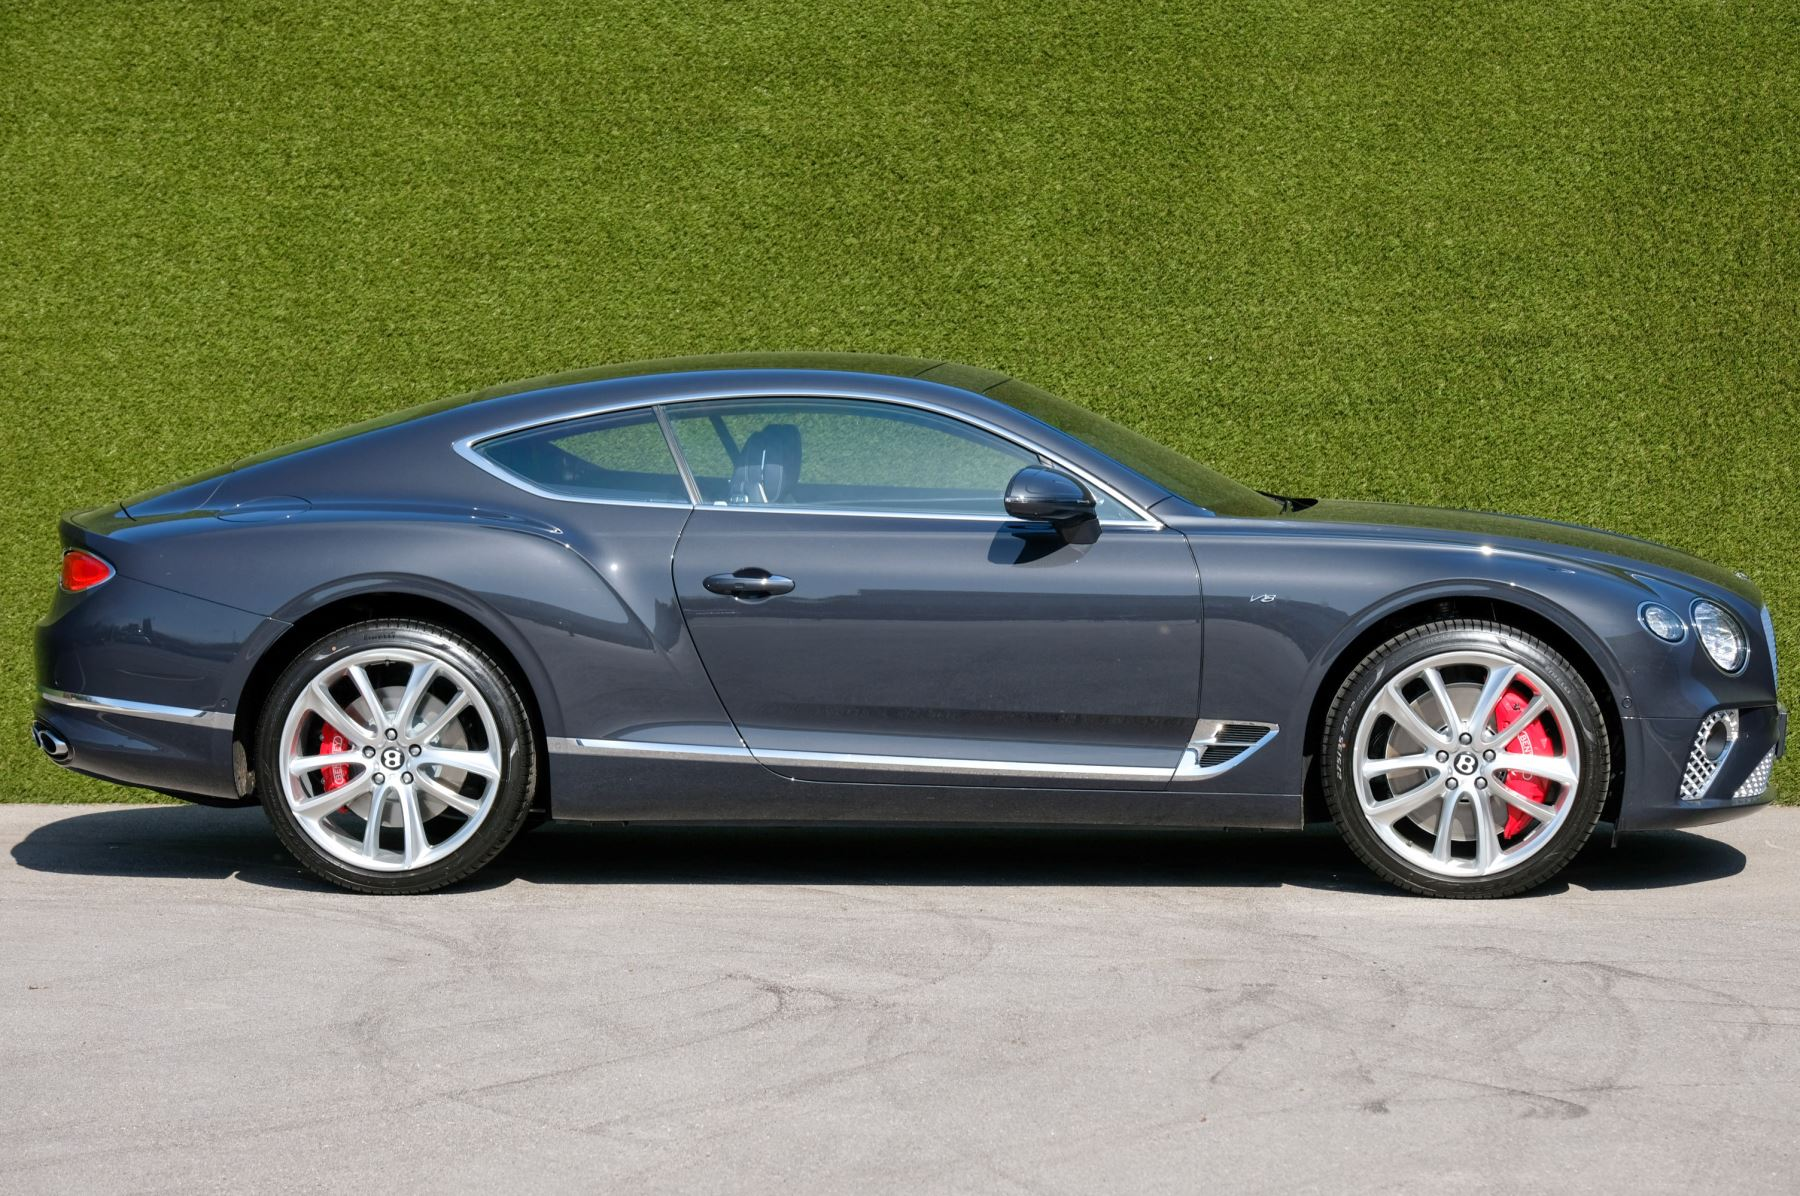 Bentley Continental GT 4.0 V8 Mulliner Edition 2dr Auto - City Specification - Panoramic Glass Roof image 3